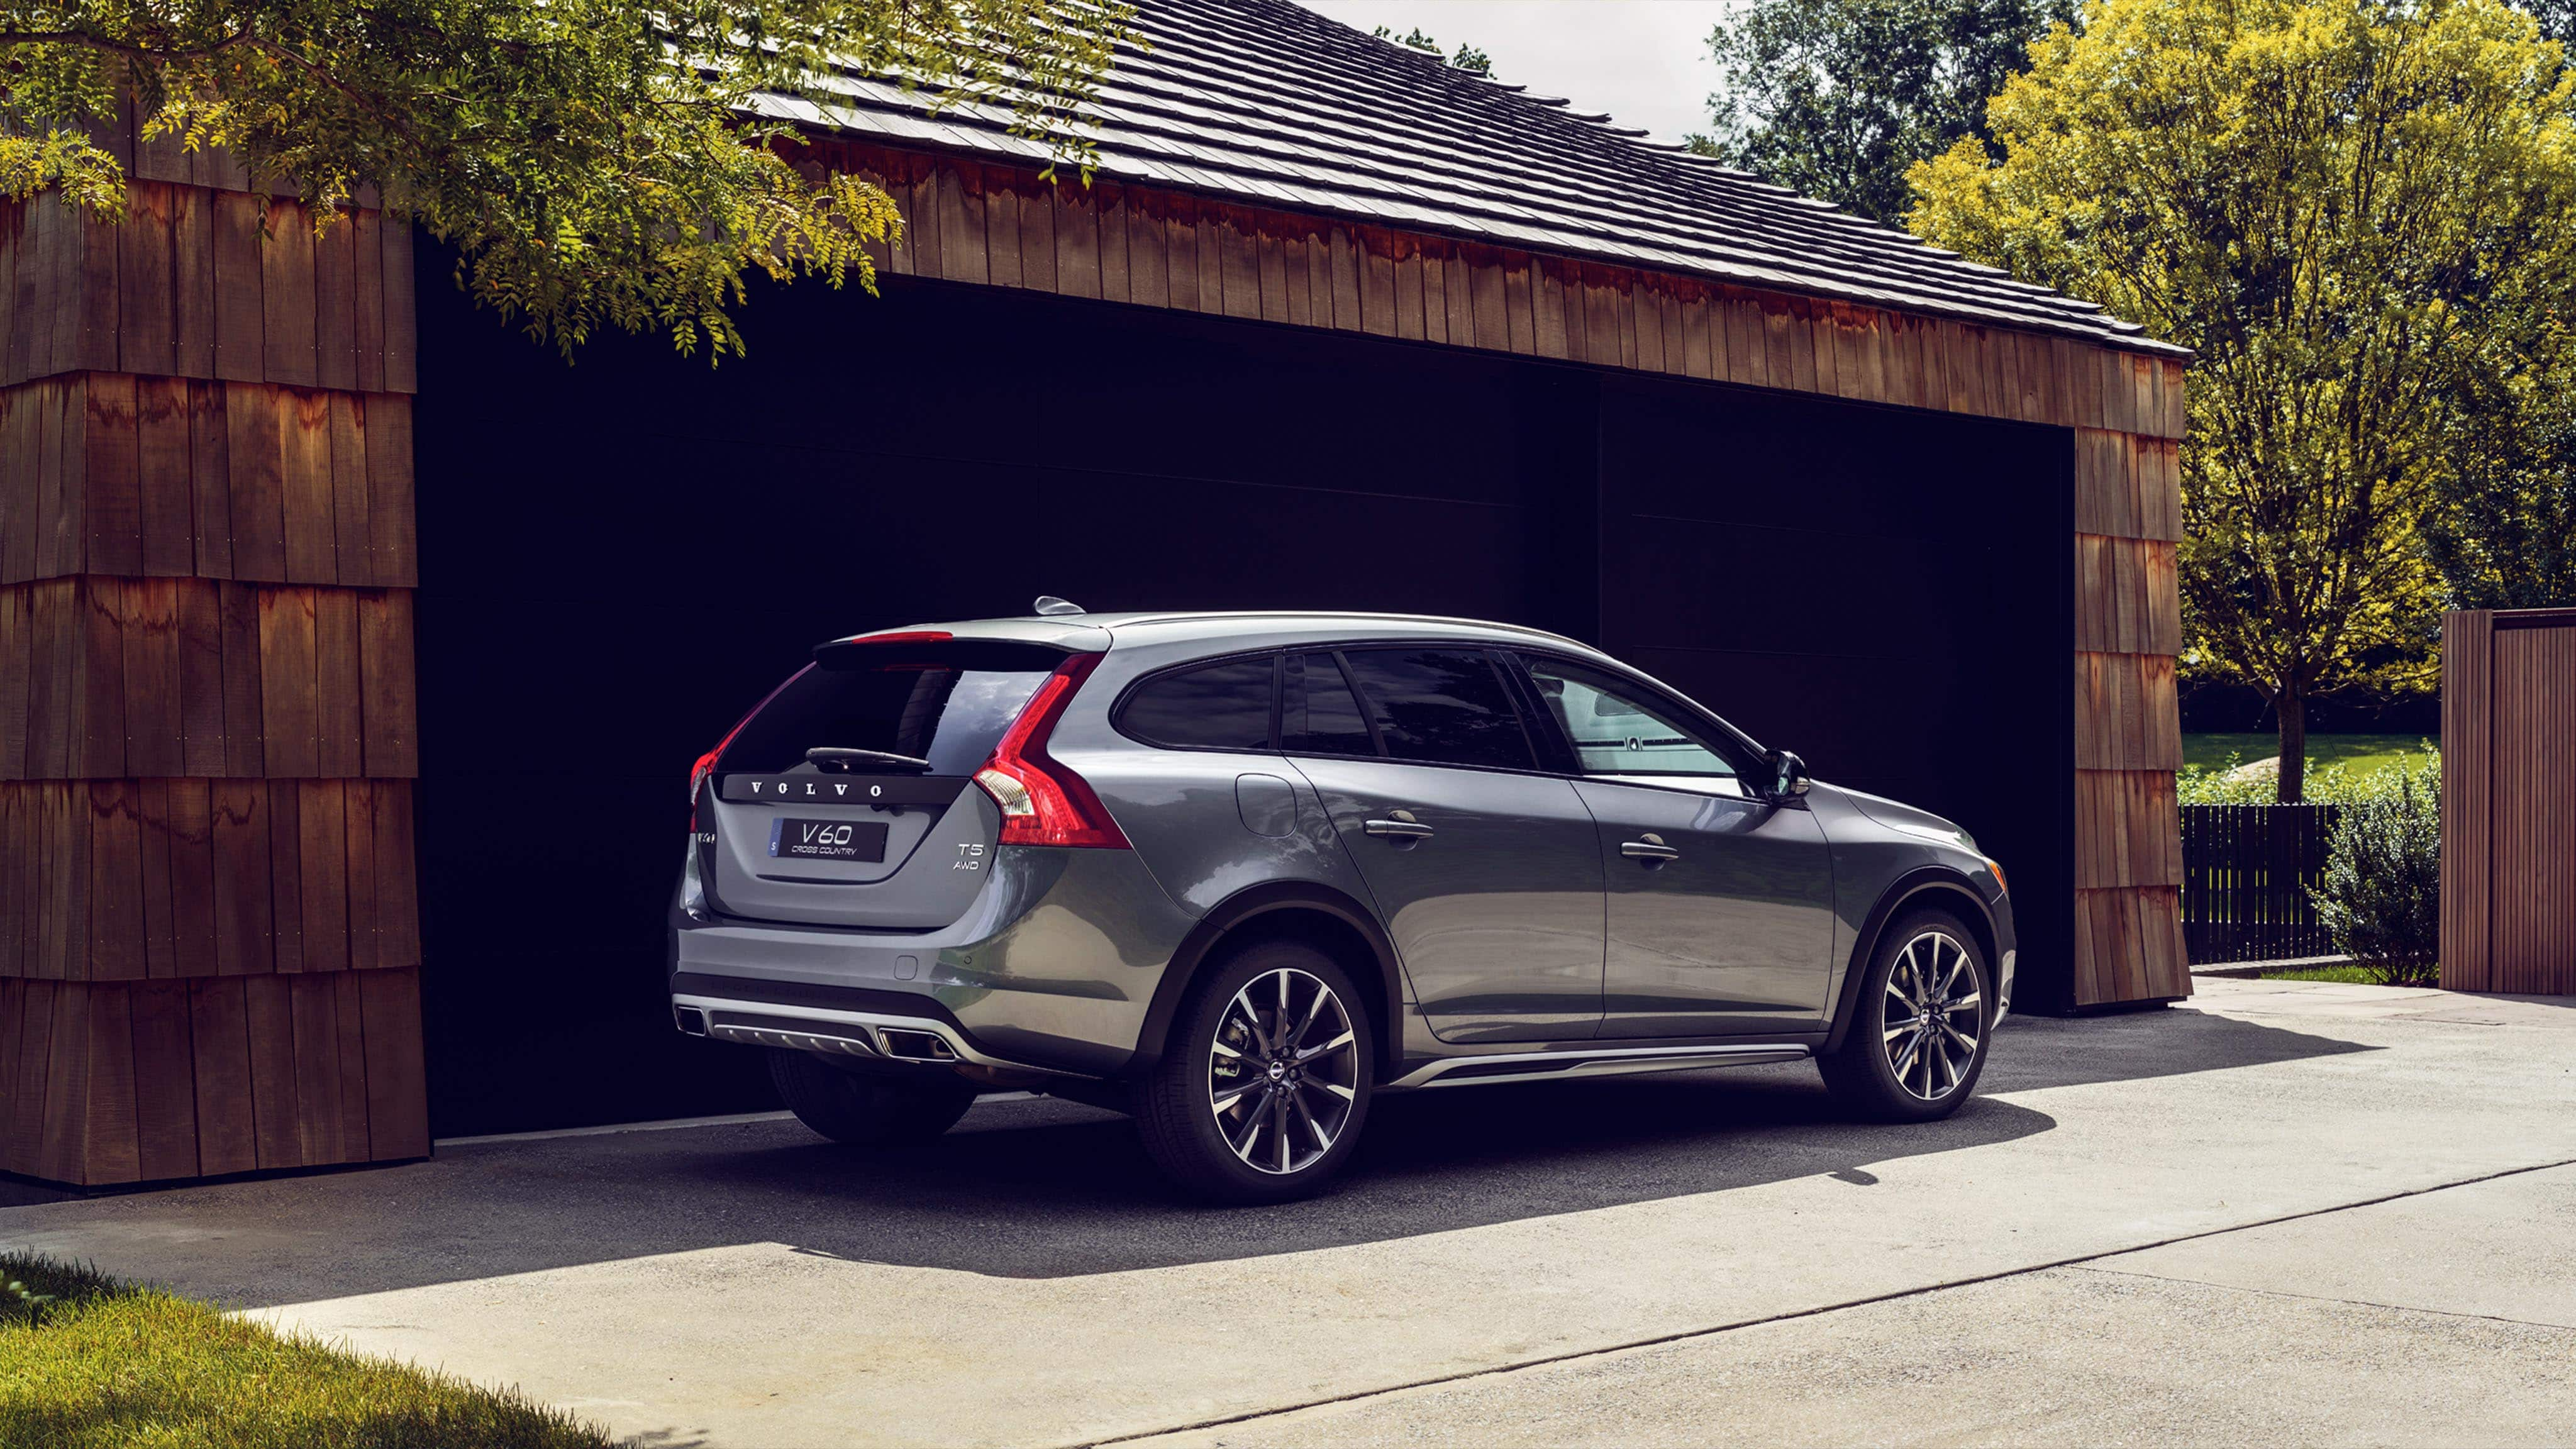 volvo journey start manvagn test swedish as would folks review that a r manwagon low average was used true of it design seem trip our in temperature c the